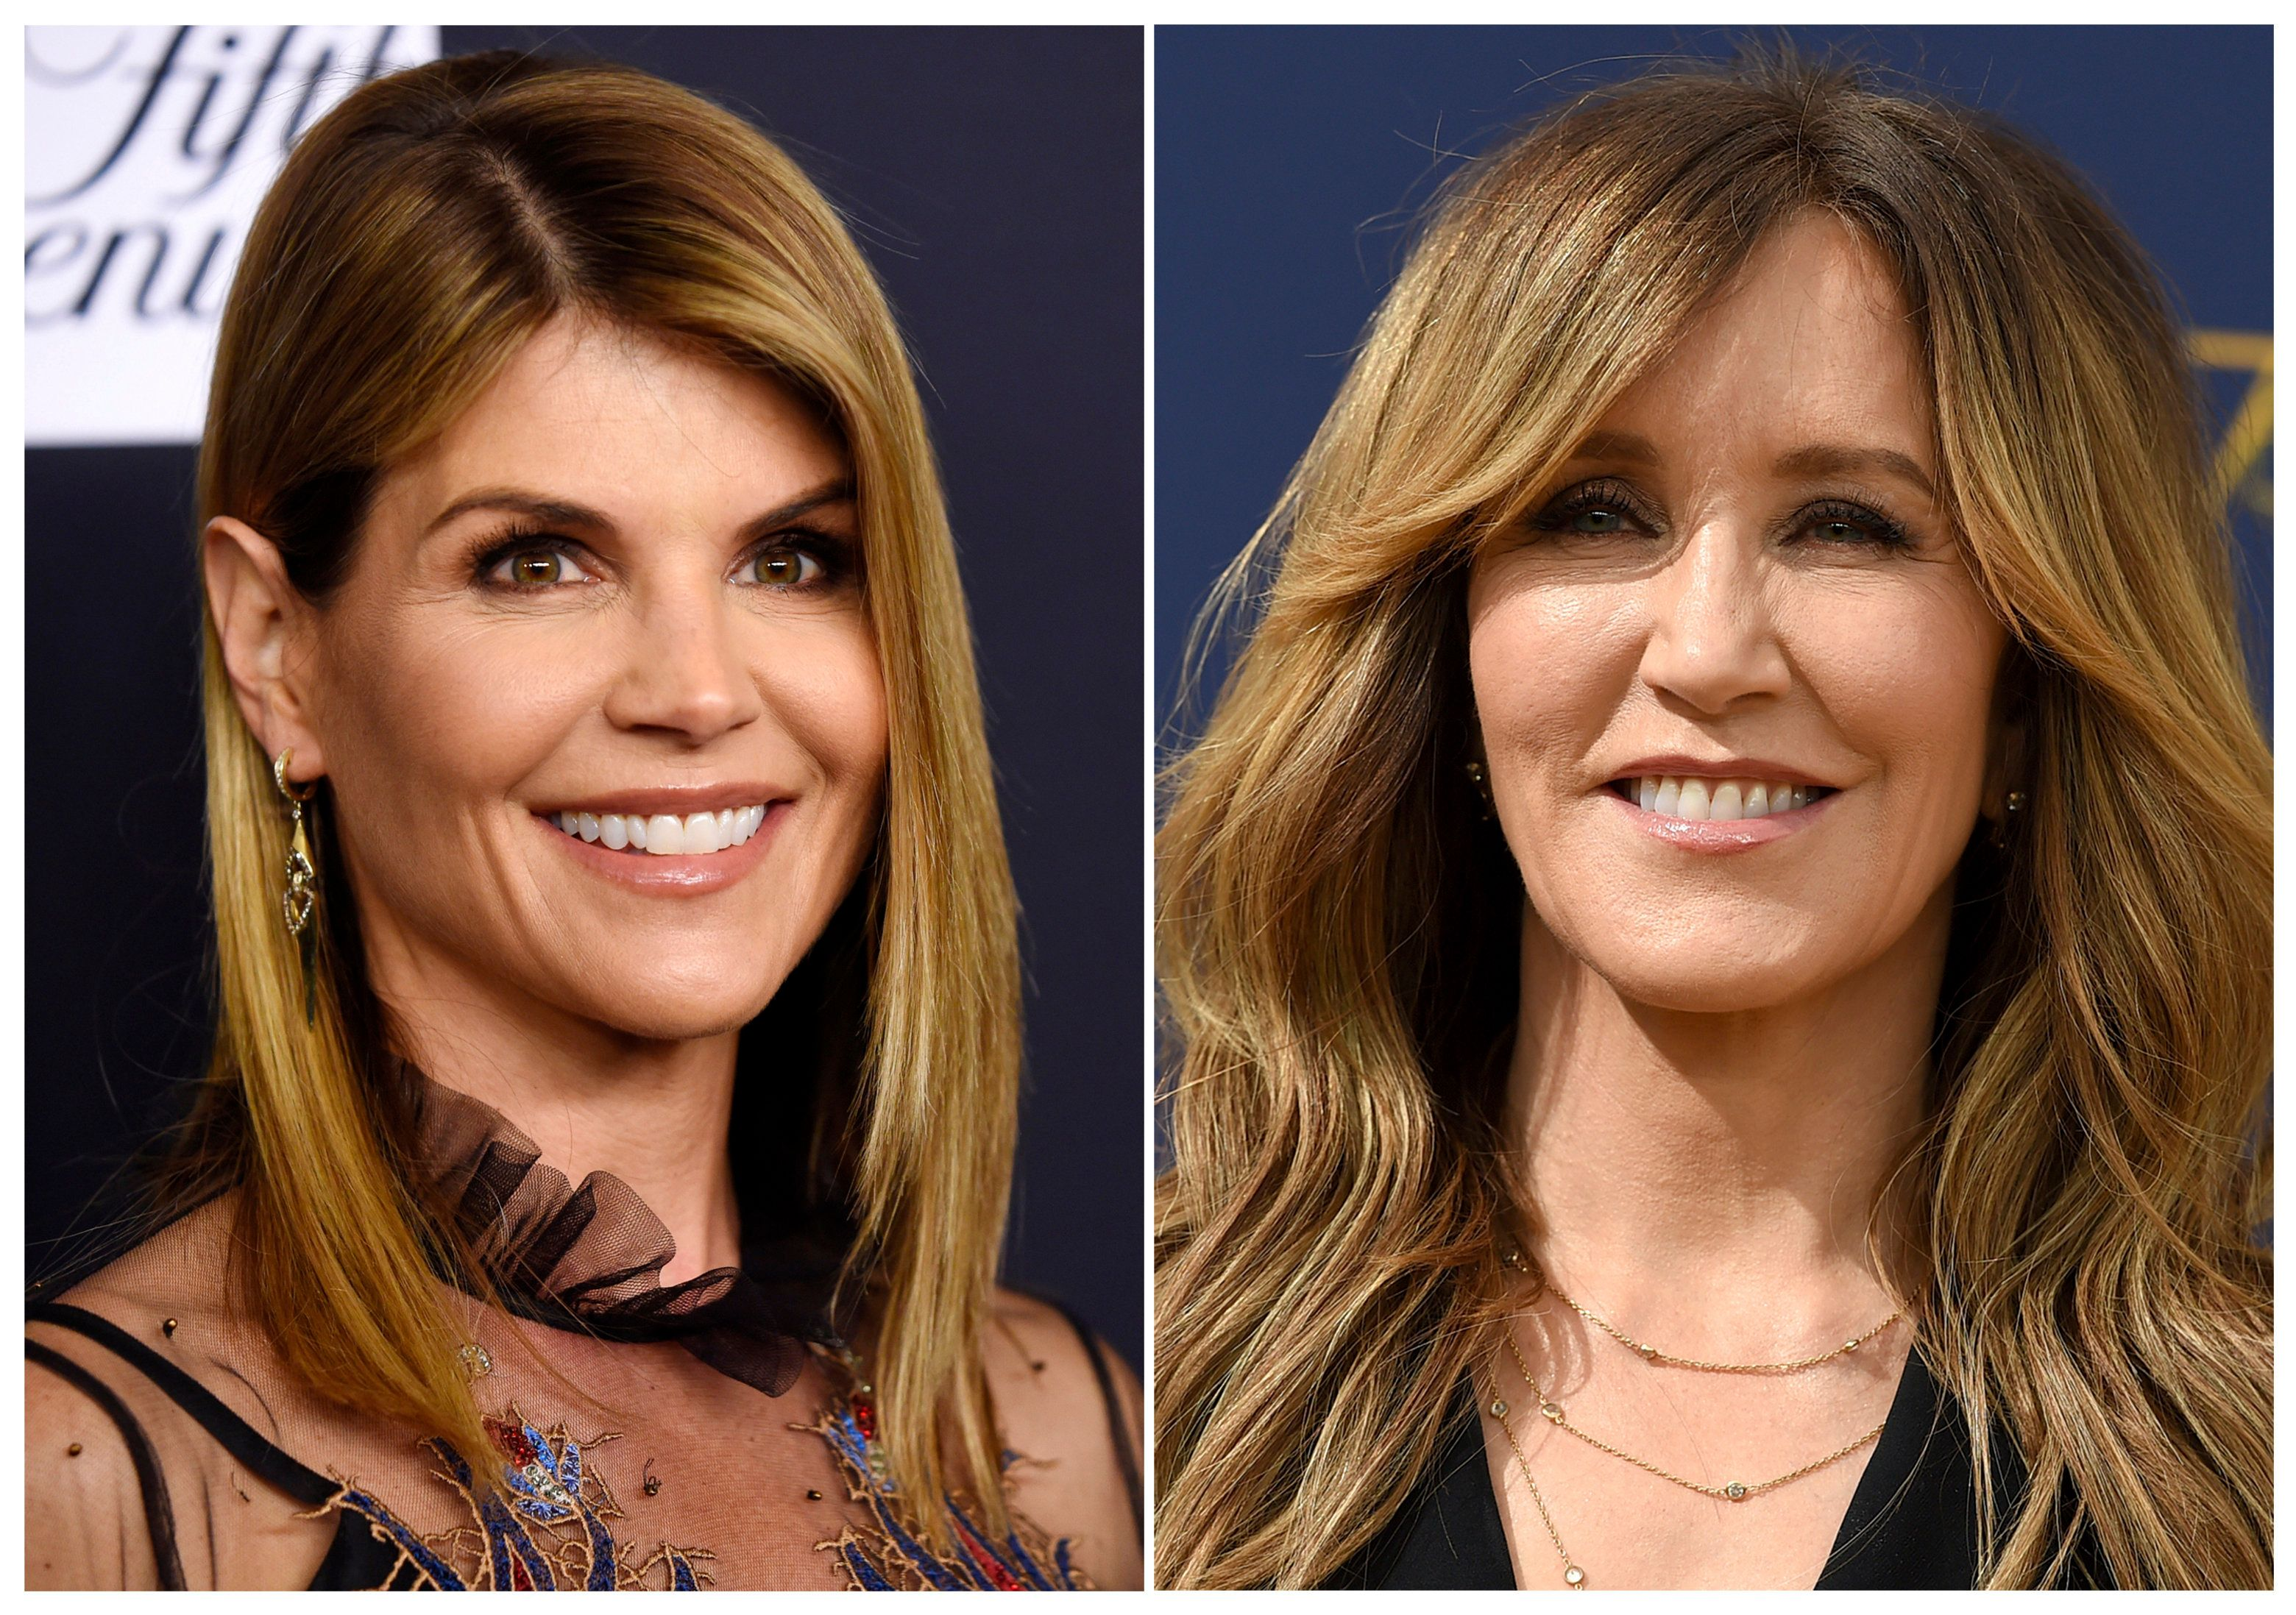 This combination photo shows actress Lori Loughlin at the Women's Cancer Research Fund's An Unforgettable Evening event in Beverly Hills, Calif., on Feb. 27, 2018, left, and actress Felicity Huffman at the 70th Primetime Emmy Awards in Los Angeles on  Sept. 17, 2018. Loughlin and Huffman are among at least 40 people indicted in a sweeping college admissions bribery scandal. Both were charged with conspiracy to commit mail fraud and wire fraud in indictments unsealed Tuesday in federal court in Boston. (AP Photo)